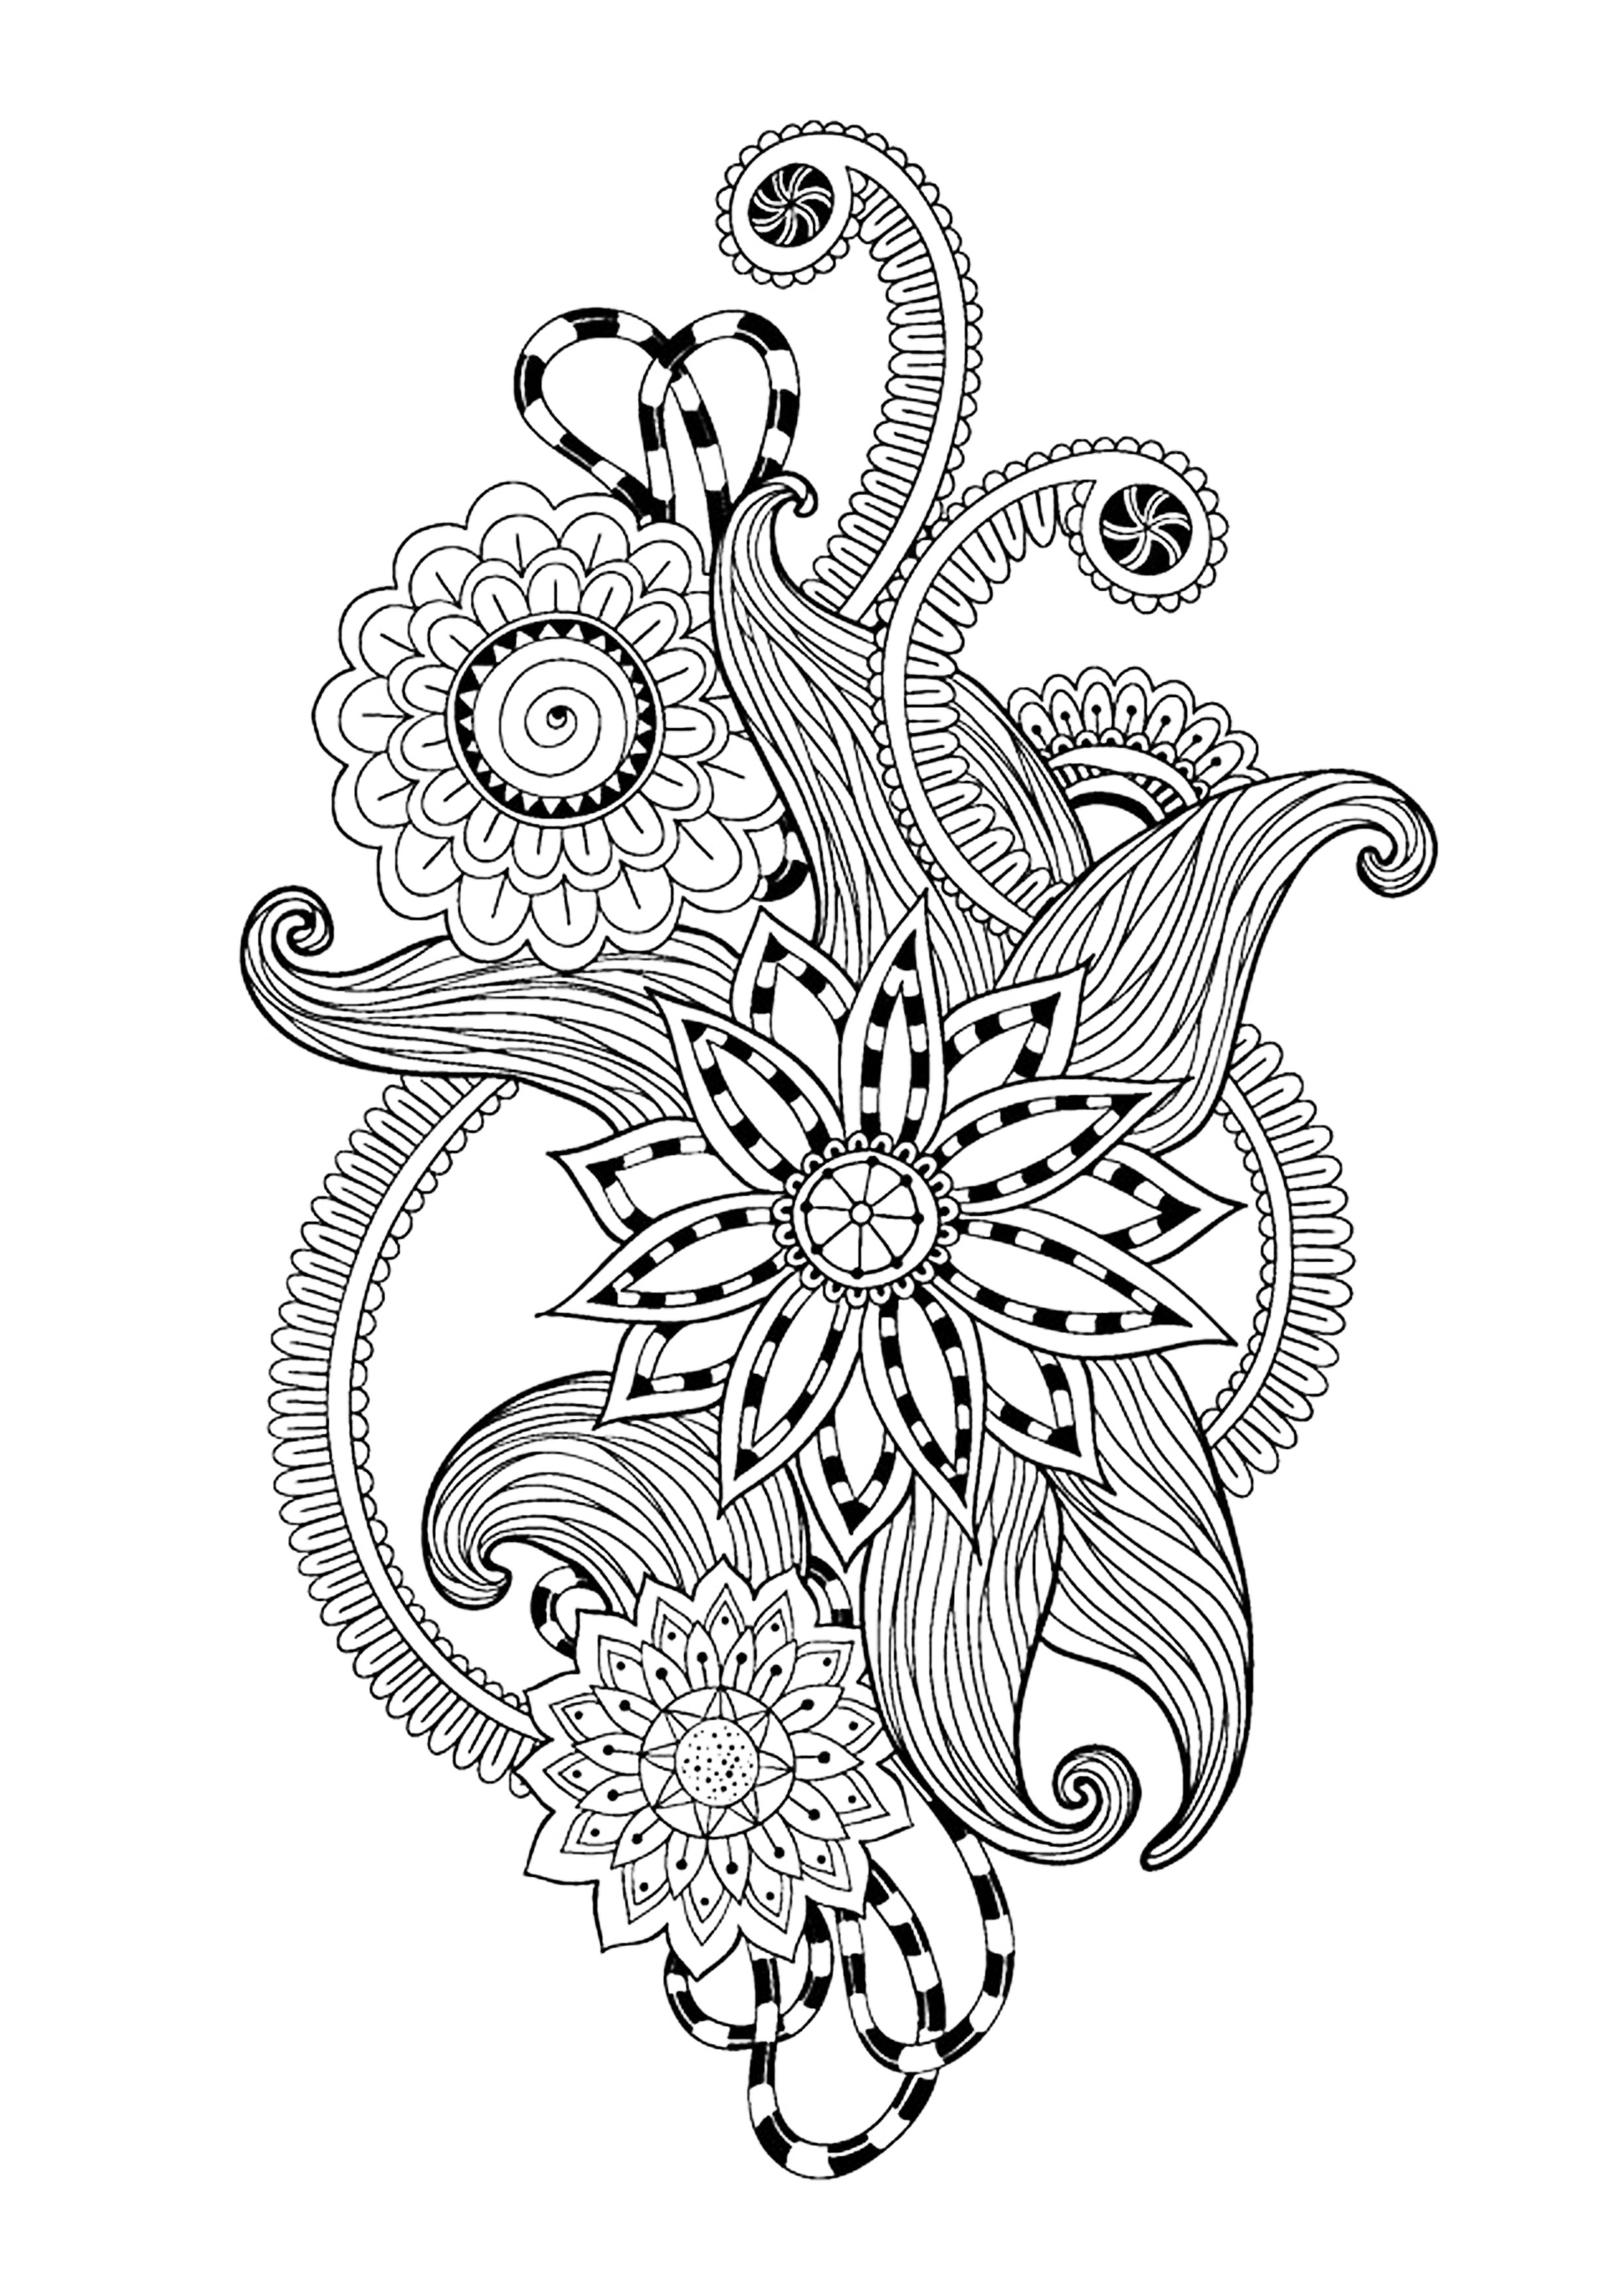 Image Result For Mandala Tree Coloring